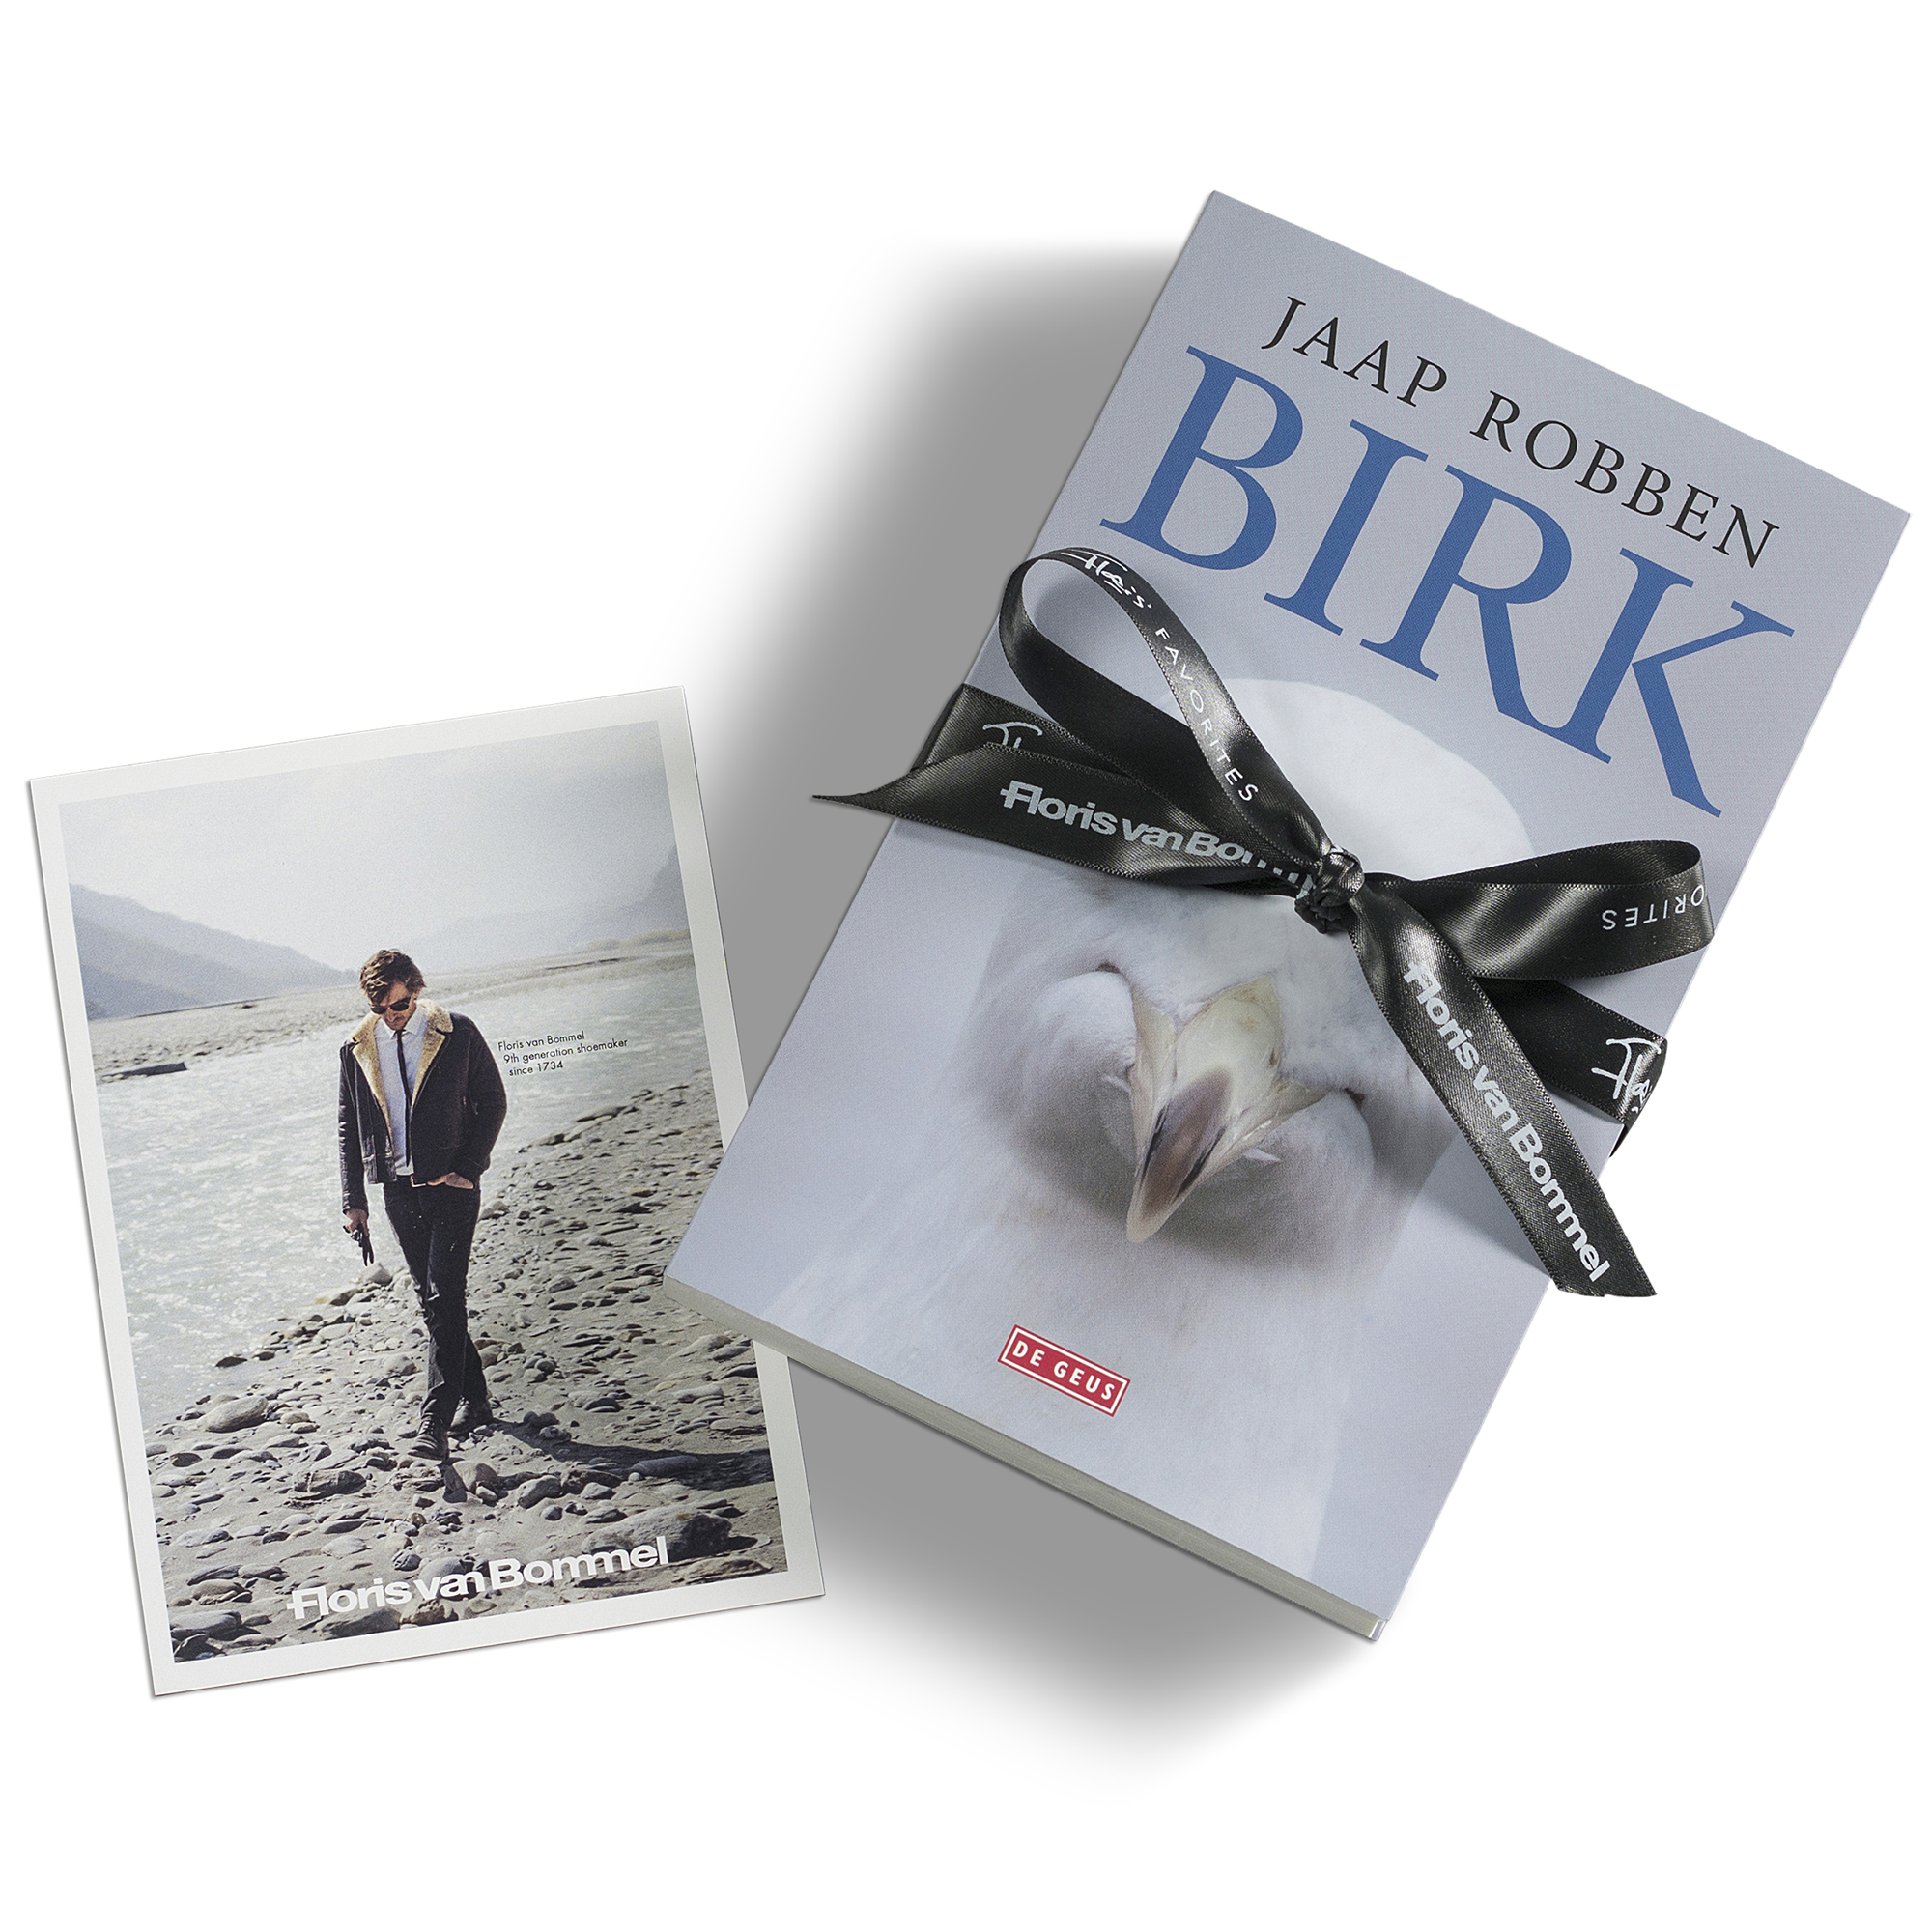 9229/01 - Floris van Bommel Favorites boek 'BIRK'